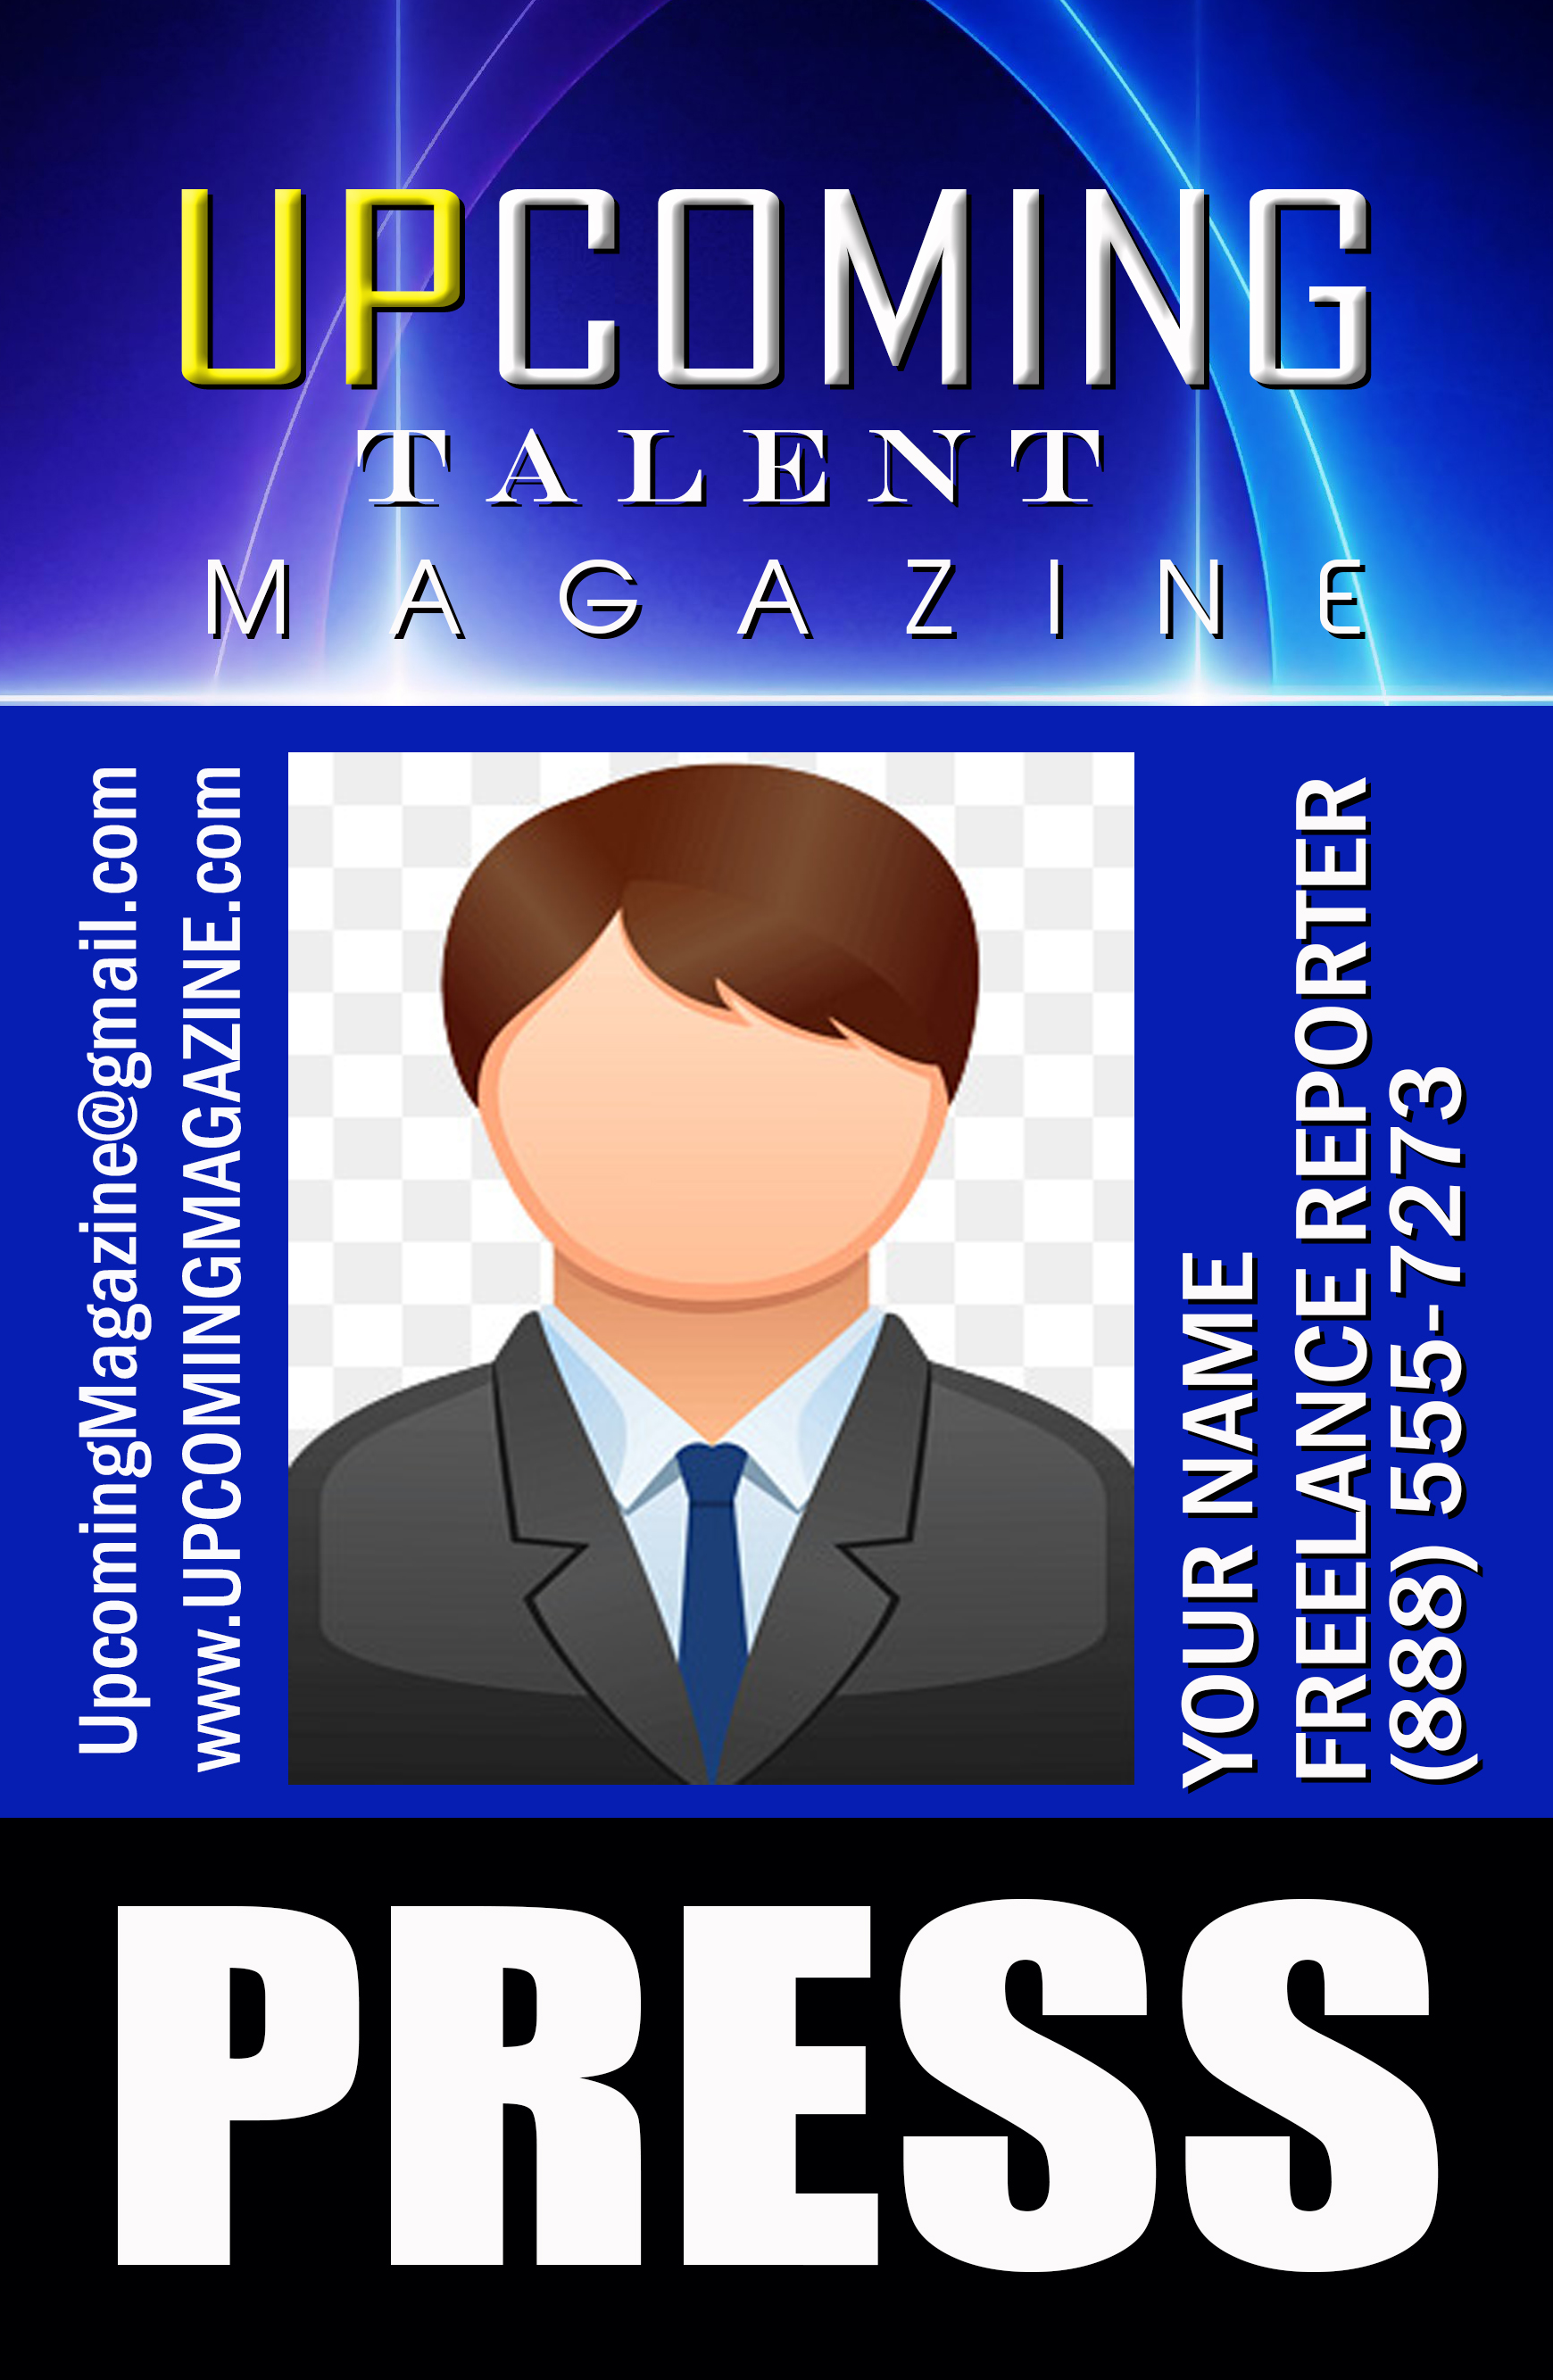 UPCOMING TALENT MAGAZINE